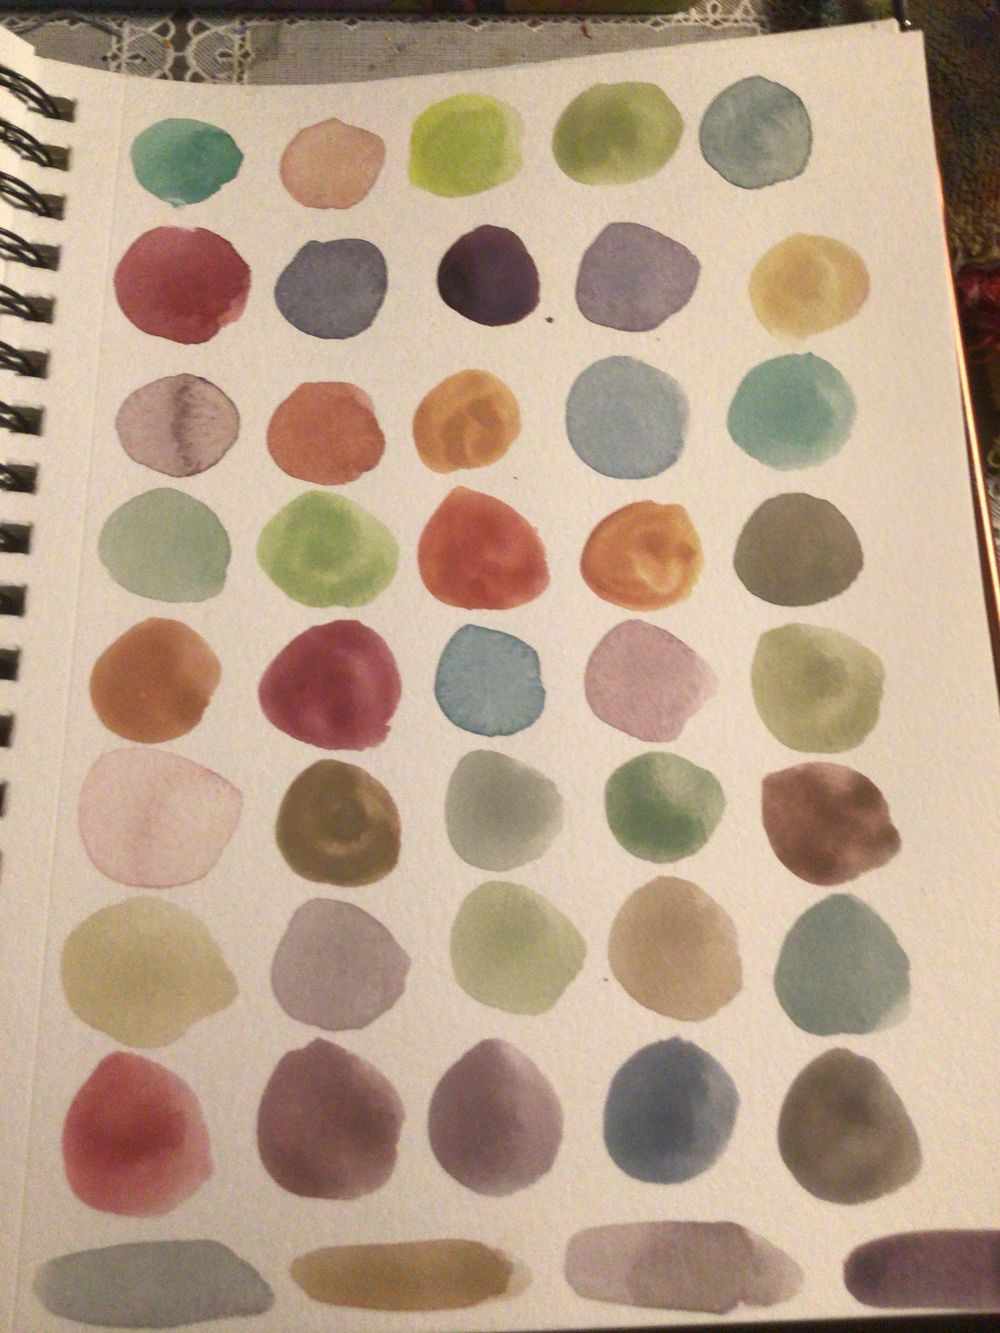 Mixing colors - image 2 - student project